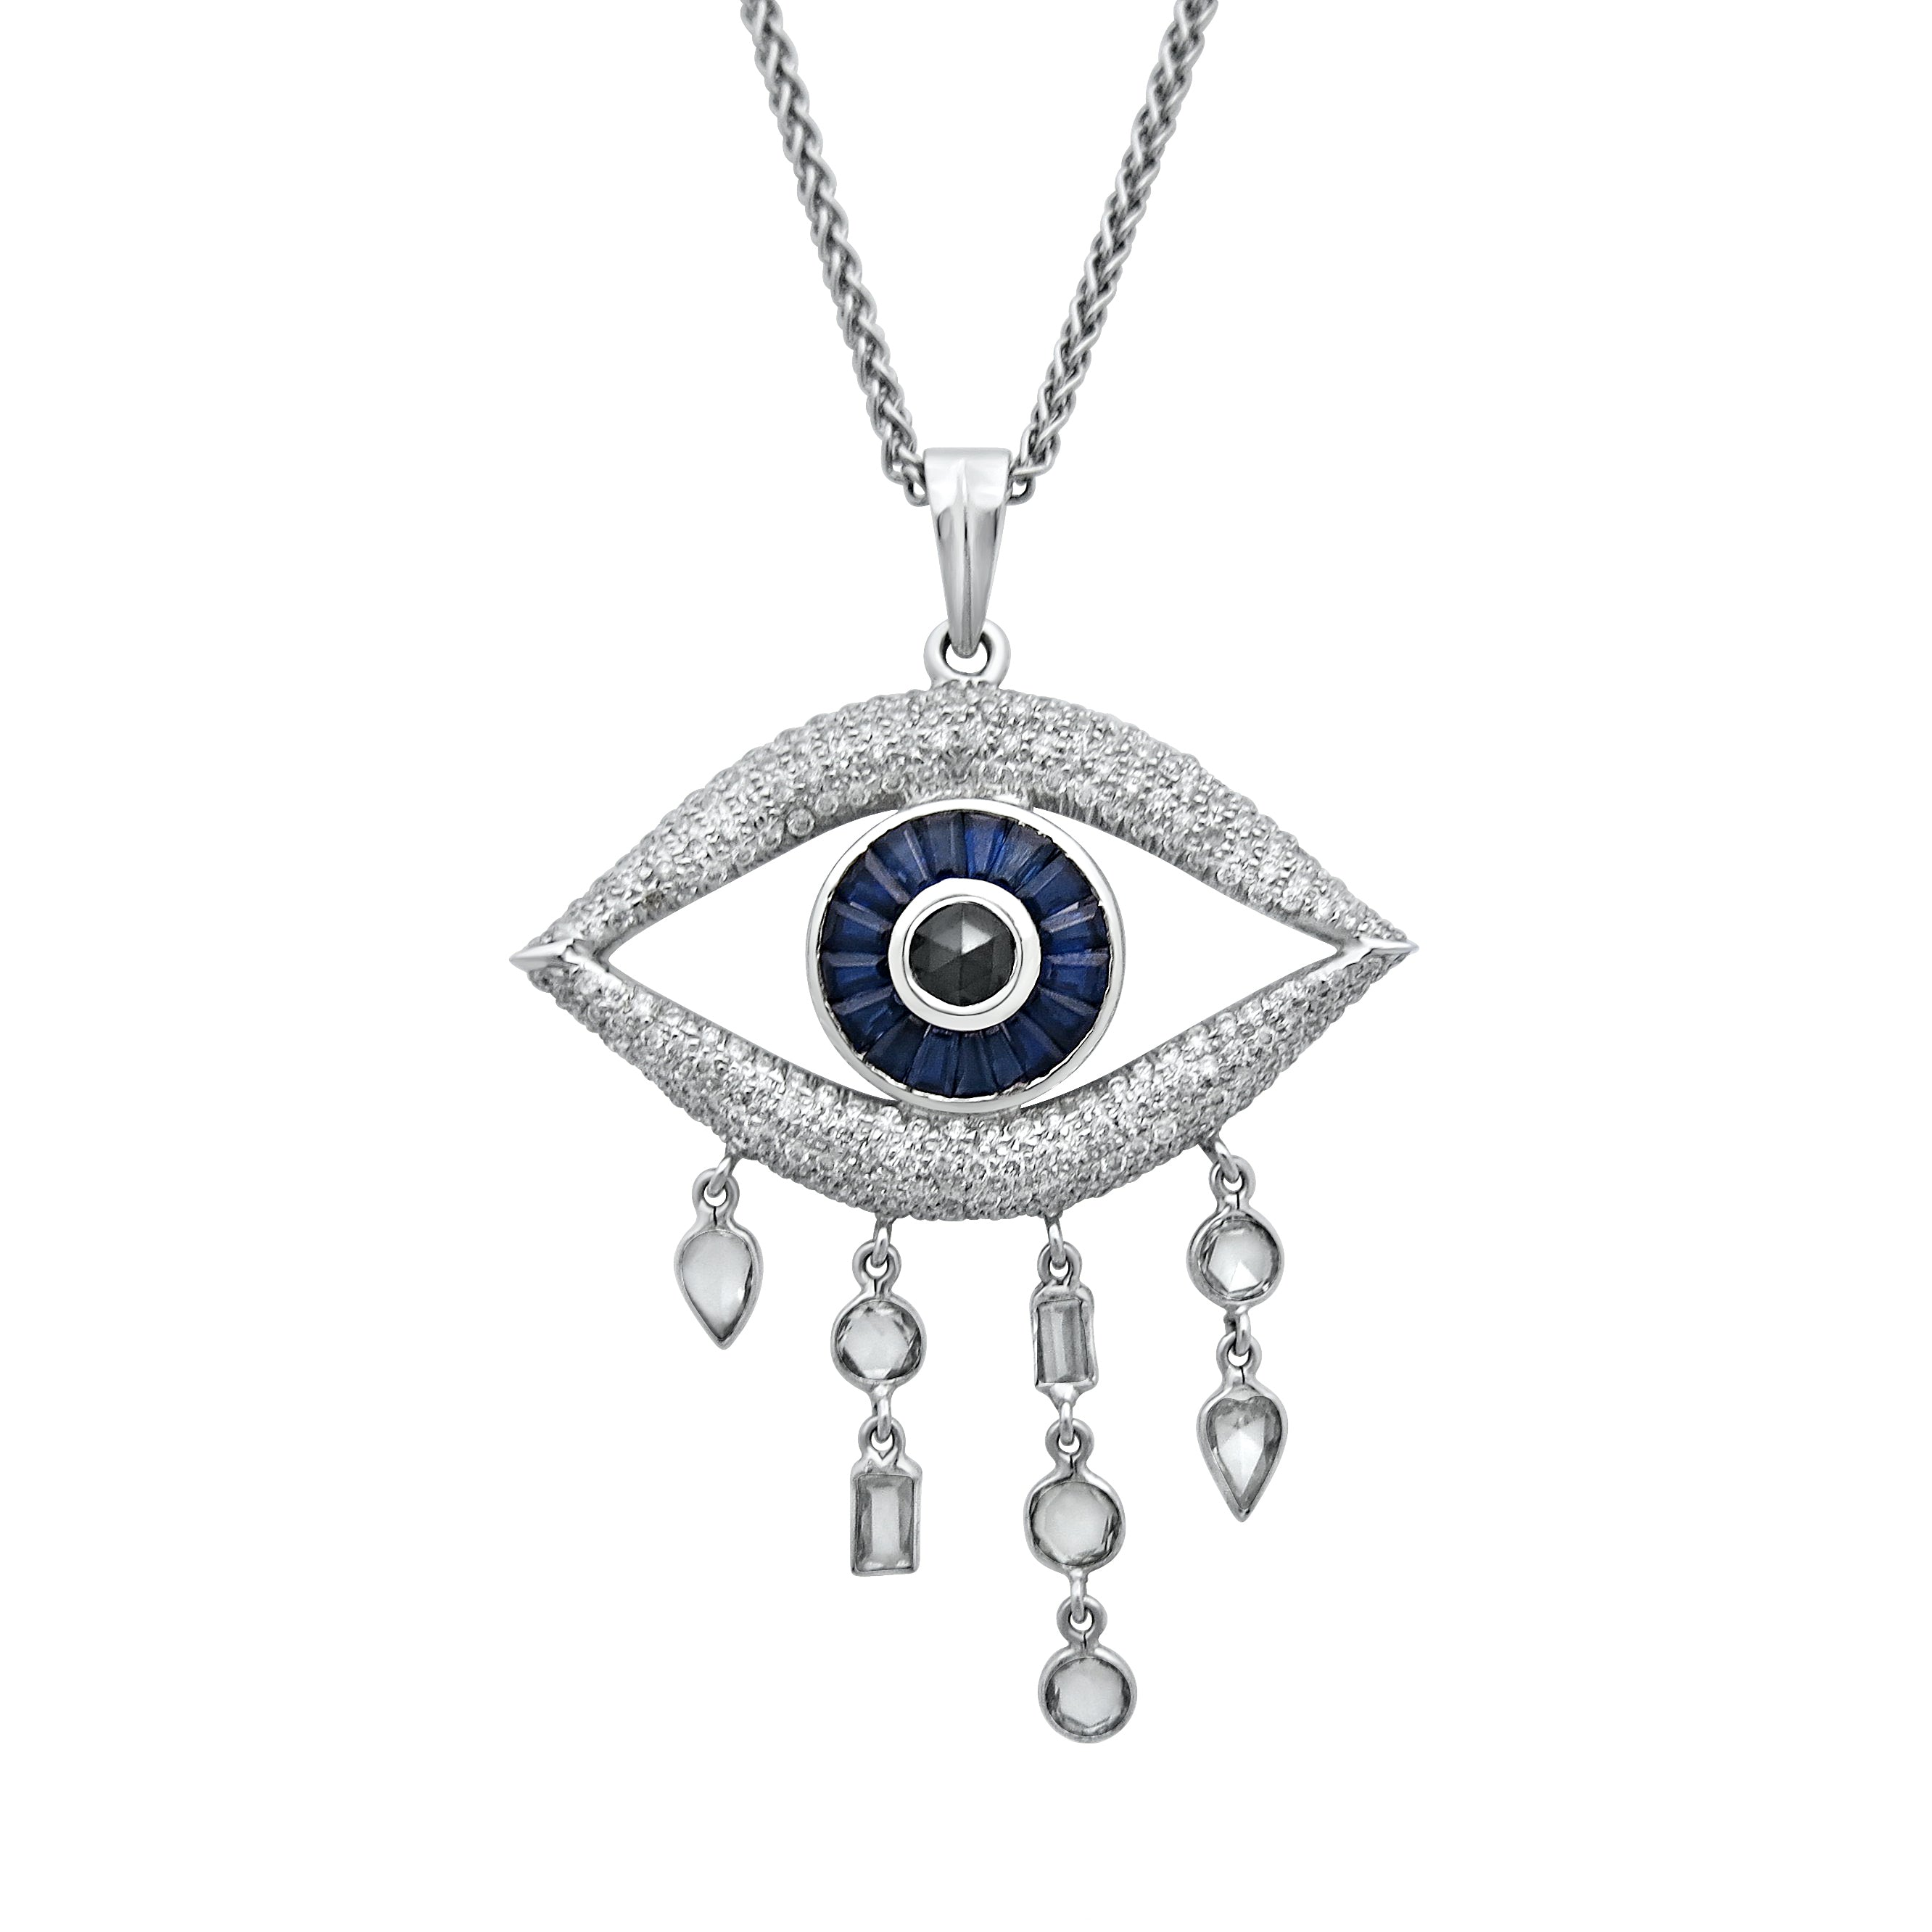 Evil Eye Necklace; Black Rose Cut Diamond, Blue Sapphires and White Diamonds in 18ct White Gold